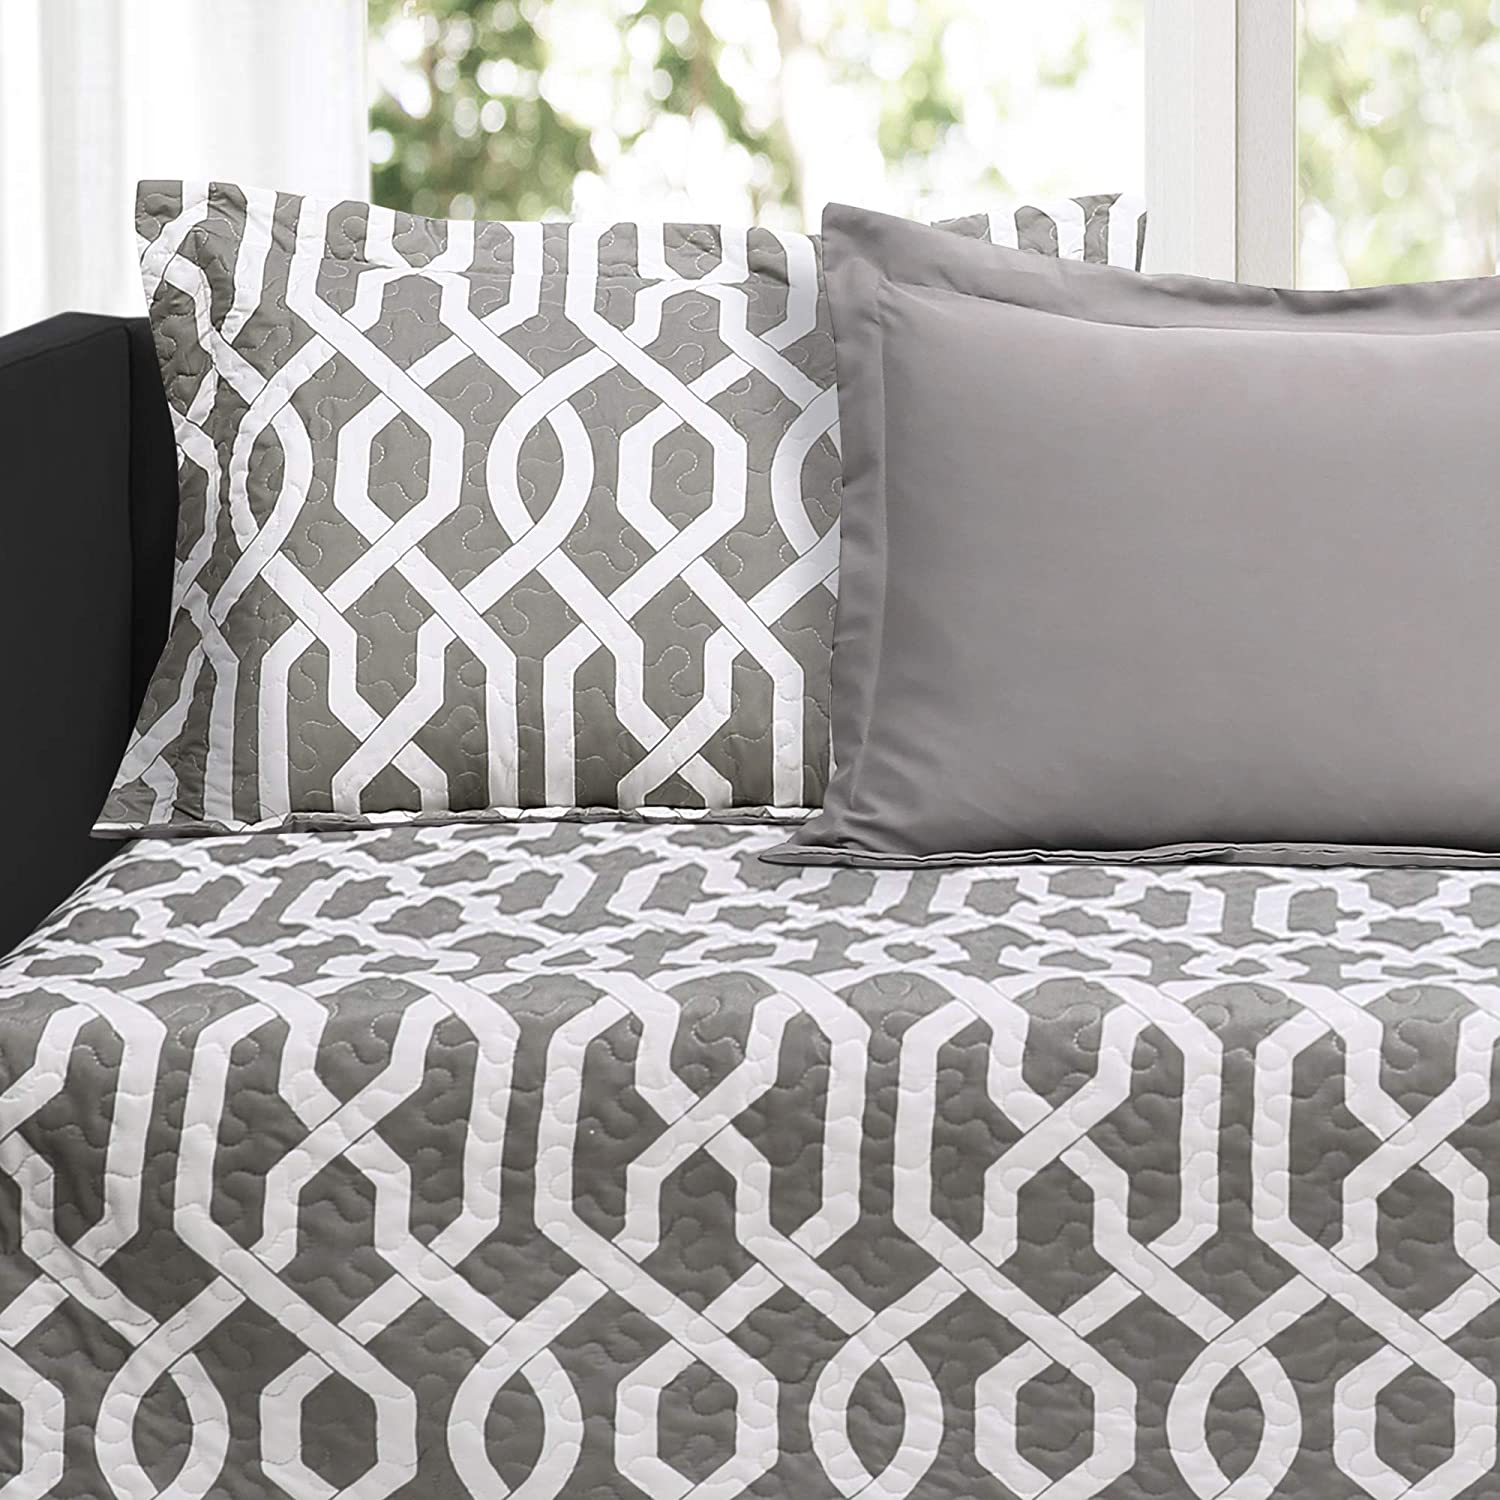 Pillow Shams and Cases Lush Decor Edward Trellis Patterned 6 Piece Daybed Cover Set Includes Bed Skirt 75 X 39 Gray and White